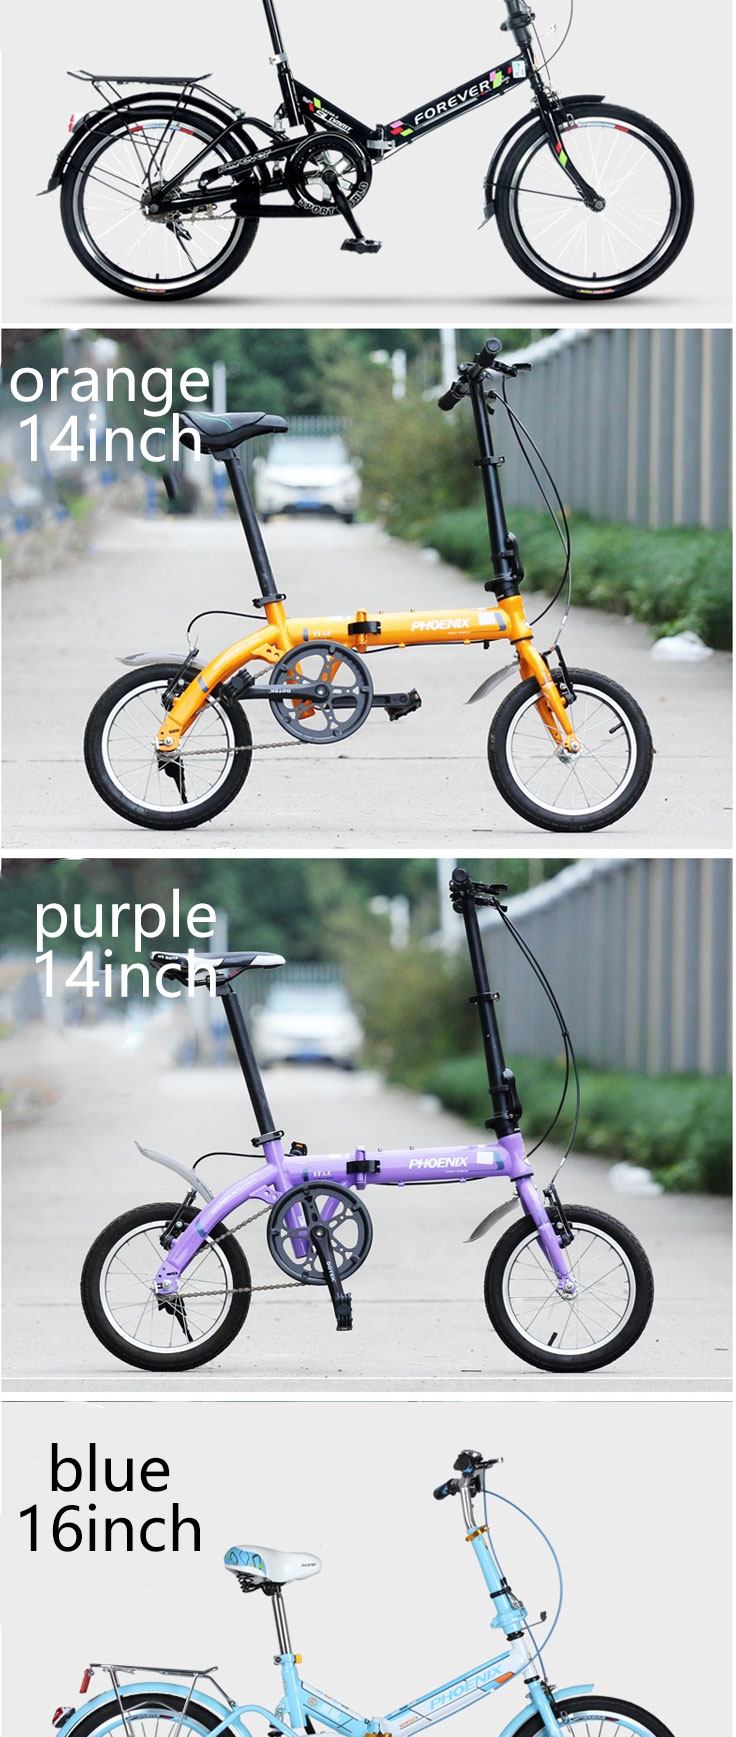 Hfb12cd7c39654e5c96a36f1d454bed7aY [TB01]20 inch folding bicycle bicycle shock absorber bicycle men and women student car leisure bicycle